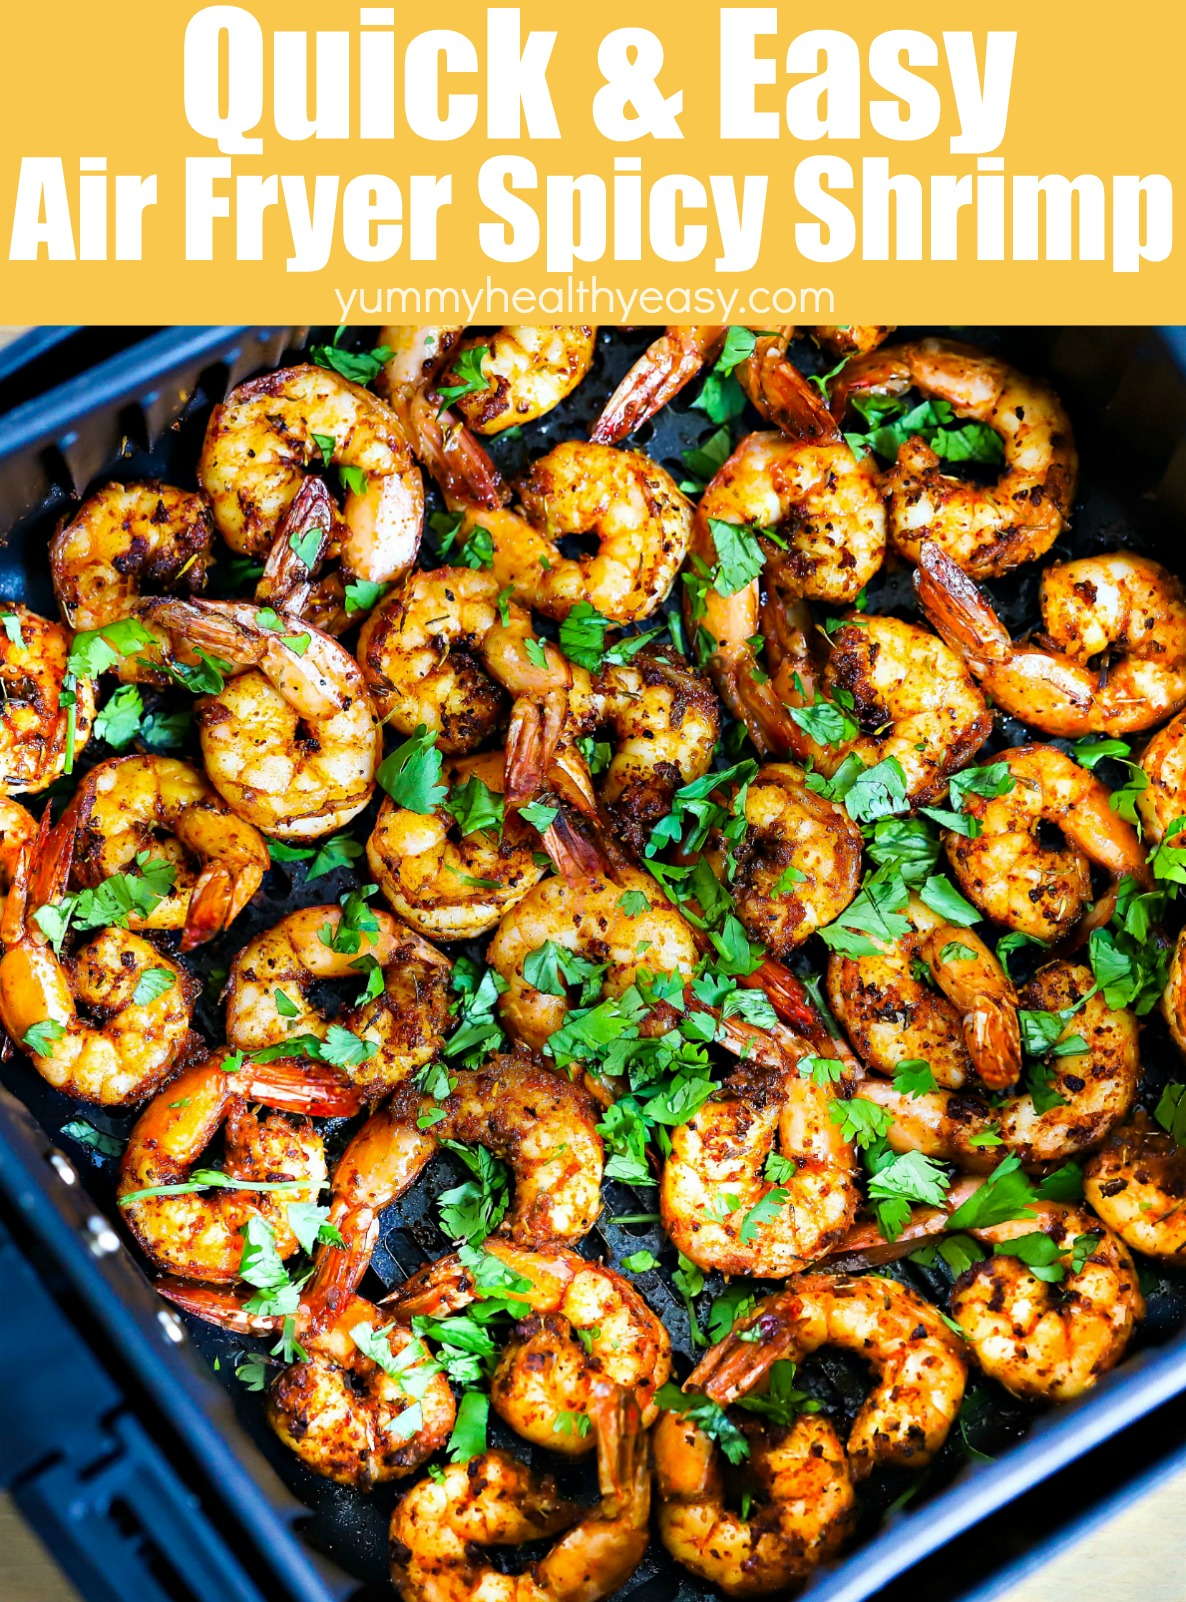 This Air Fryer Spicy Shrimp Recipe is so easy to make and only takes a few minutes in the air fryer! Toss shrimp in an easy spice mix and you have yourself a delicious appetizer, snack or dinner (great in tacos, burritos or over rice!) #shrimp #shrimprecipe #recipe #dinner #dinnerrecipe #healthyfood #airfryer #airfryerdinner via @jennikolaus